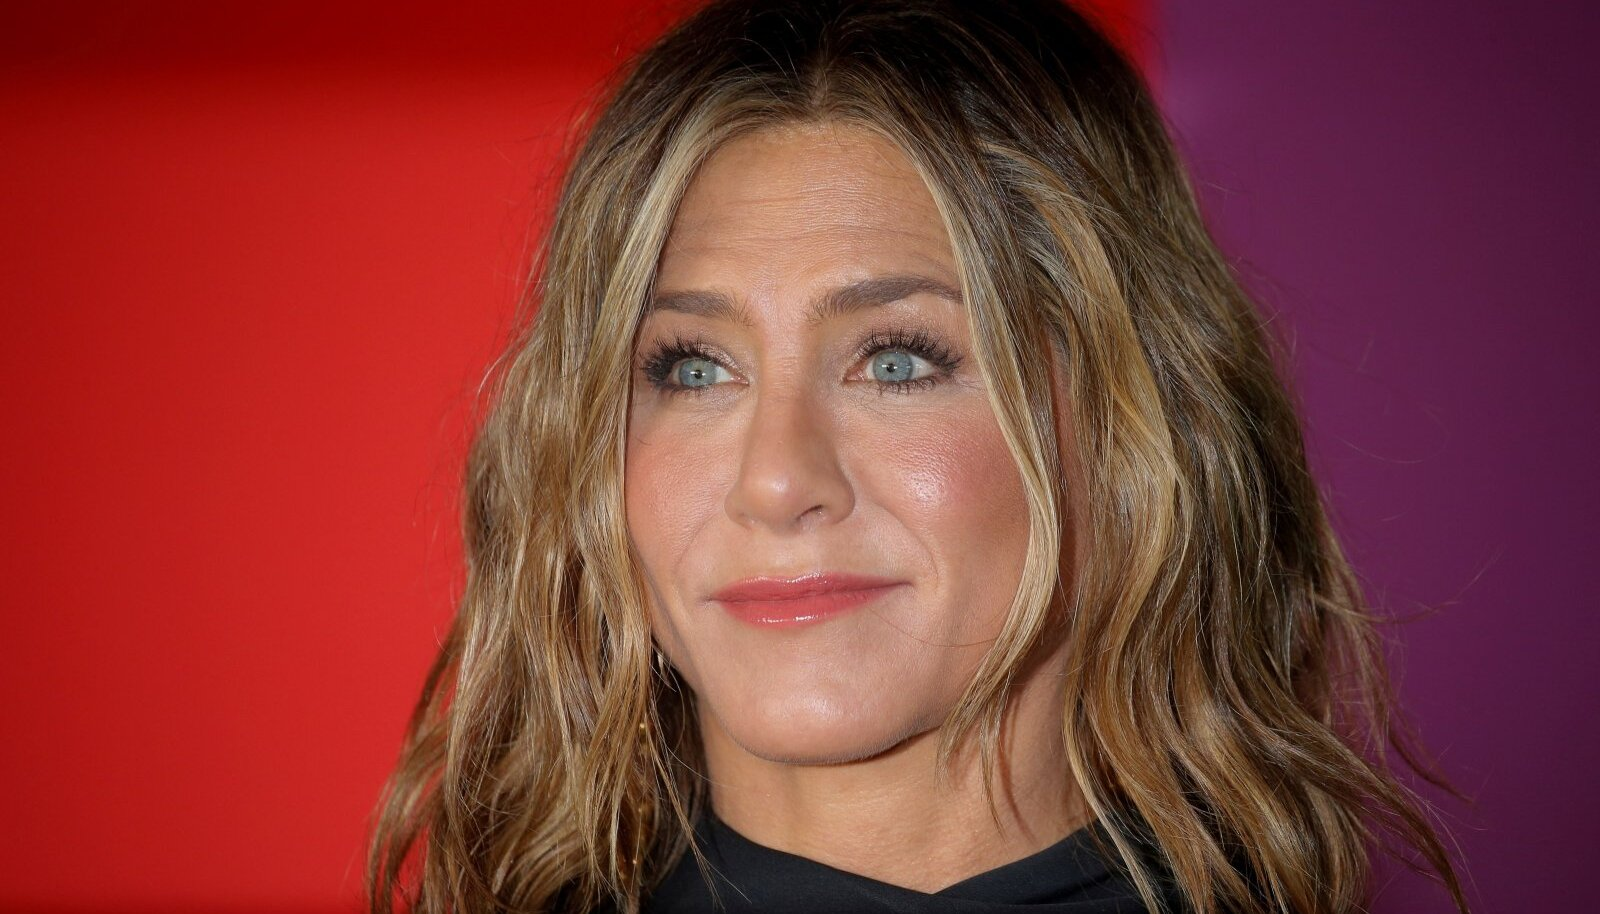 """FILE PHOTO: Aniston arrives to the global premiere for Apple's """"The Morning Show"""" at the Lincoln Center in the Manhattan borough of New York"""